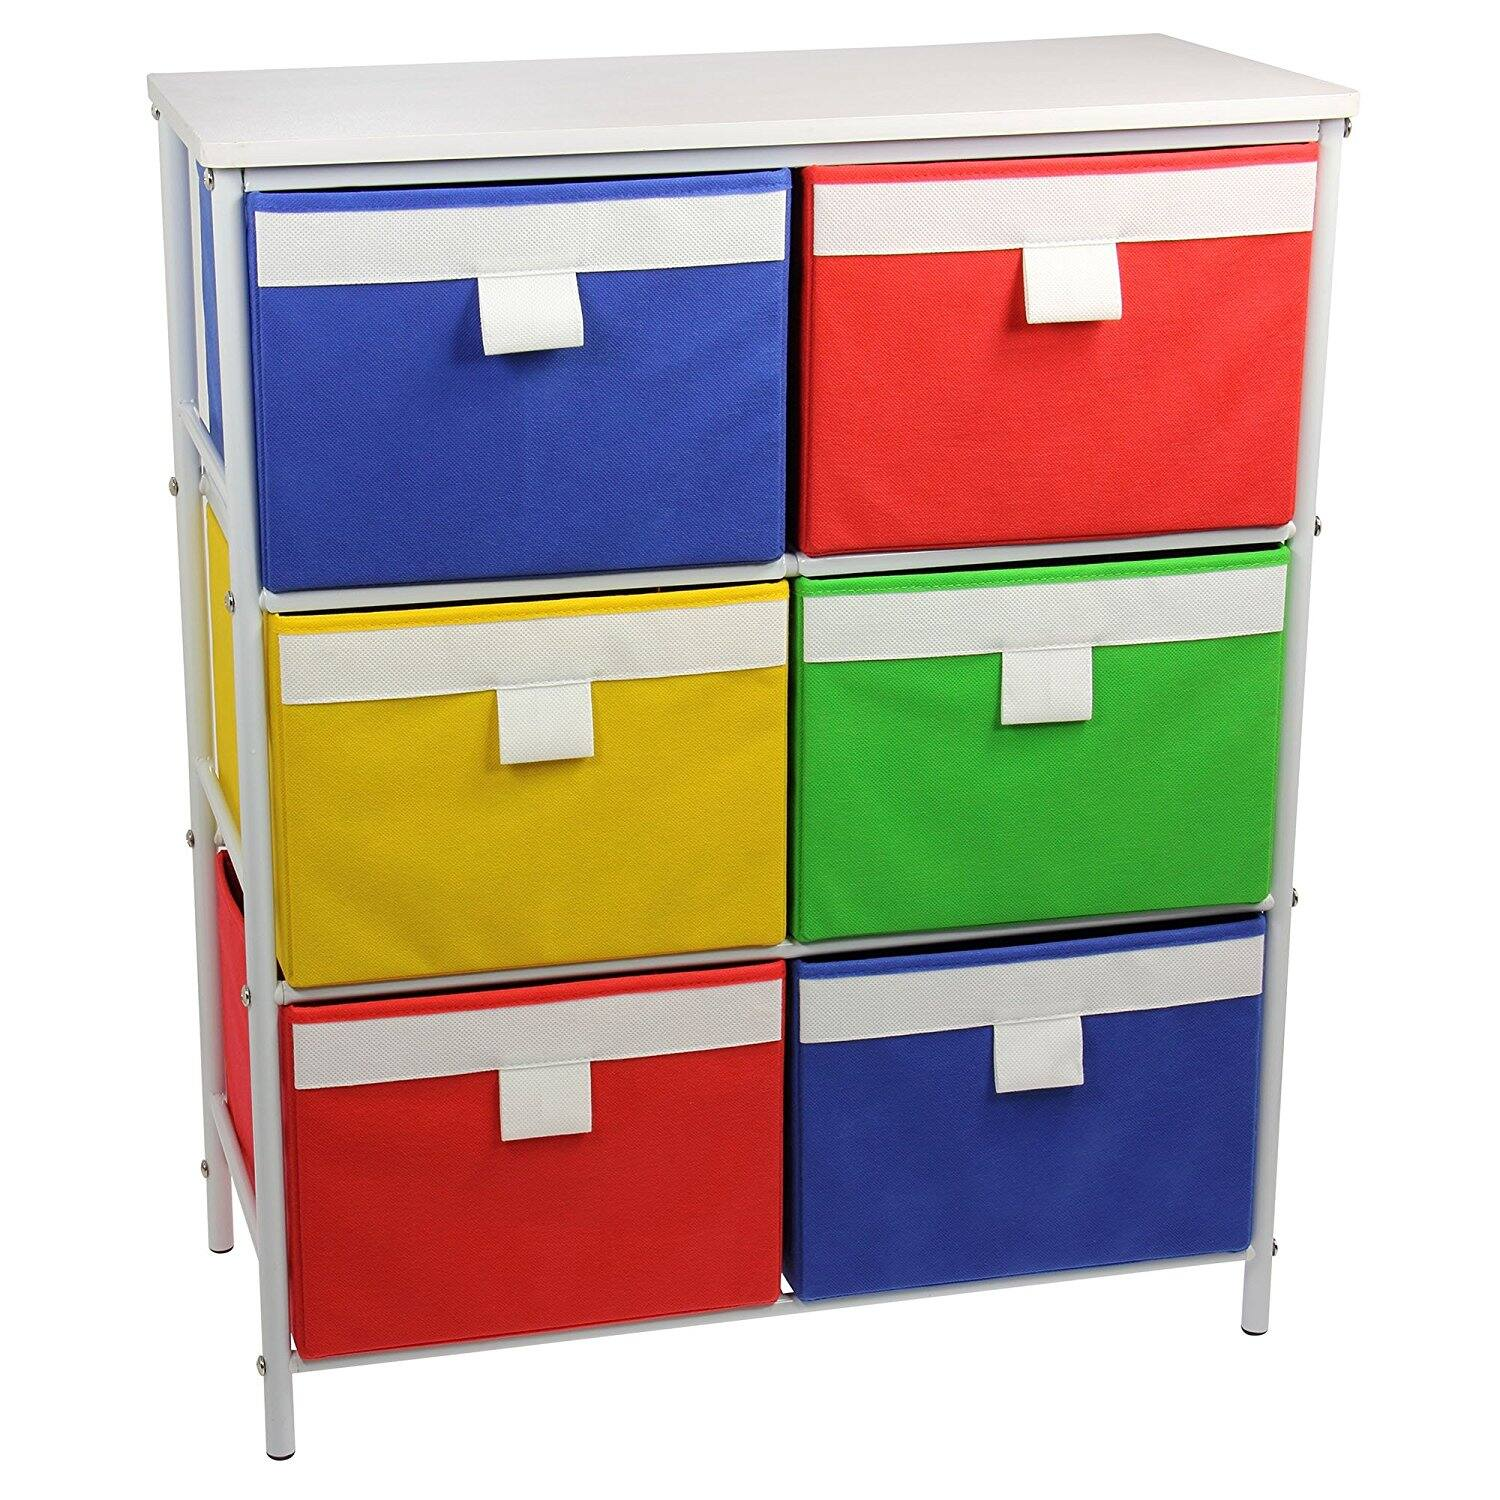 $26.58 Amazon: Metal Storage Unit with 3 Shelves and 6 Removable Multi-Colored Bins